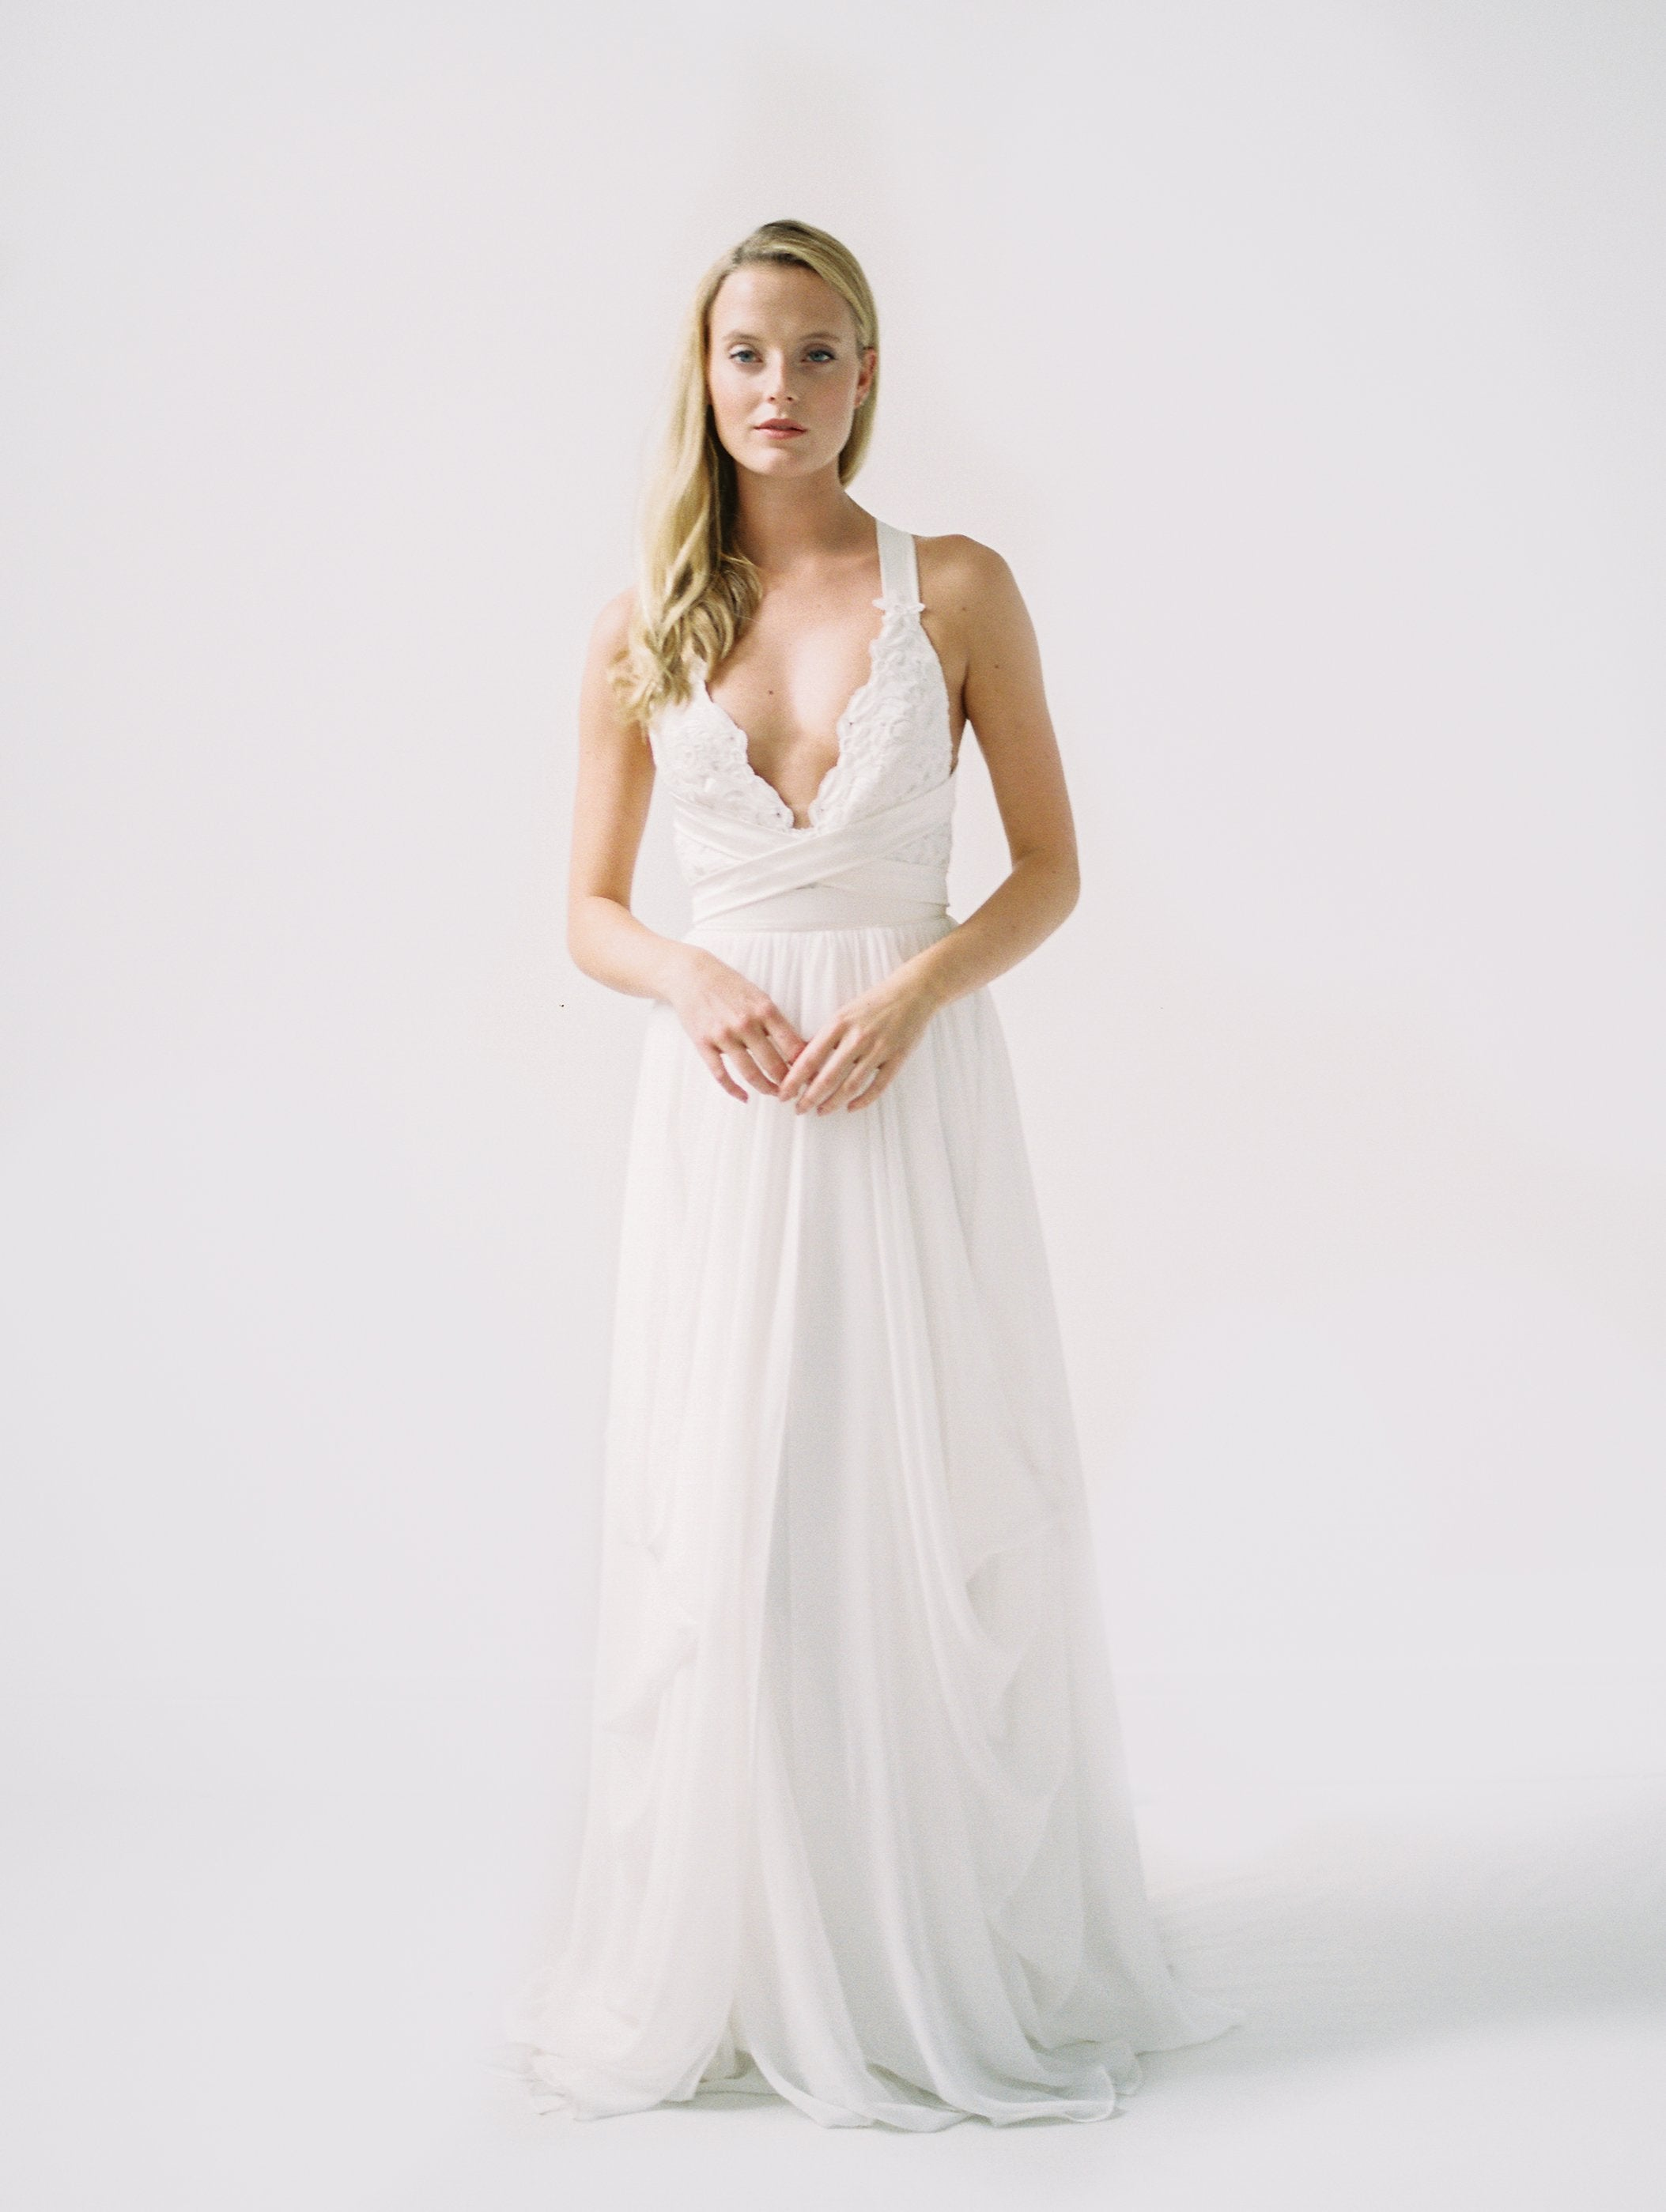 Wedding dress for beach wedding with multiway straps, white lace, and a long chiffon train